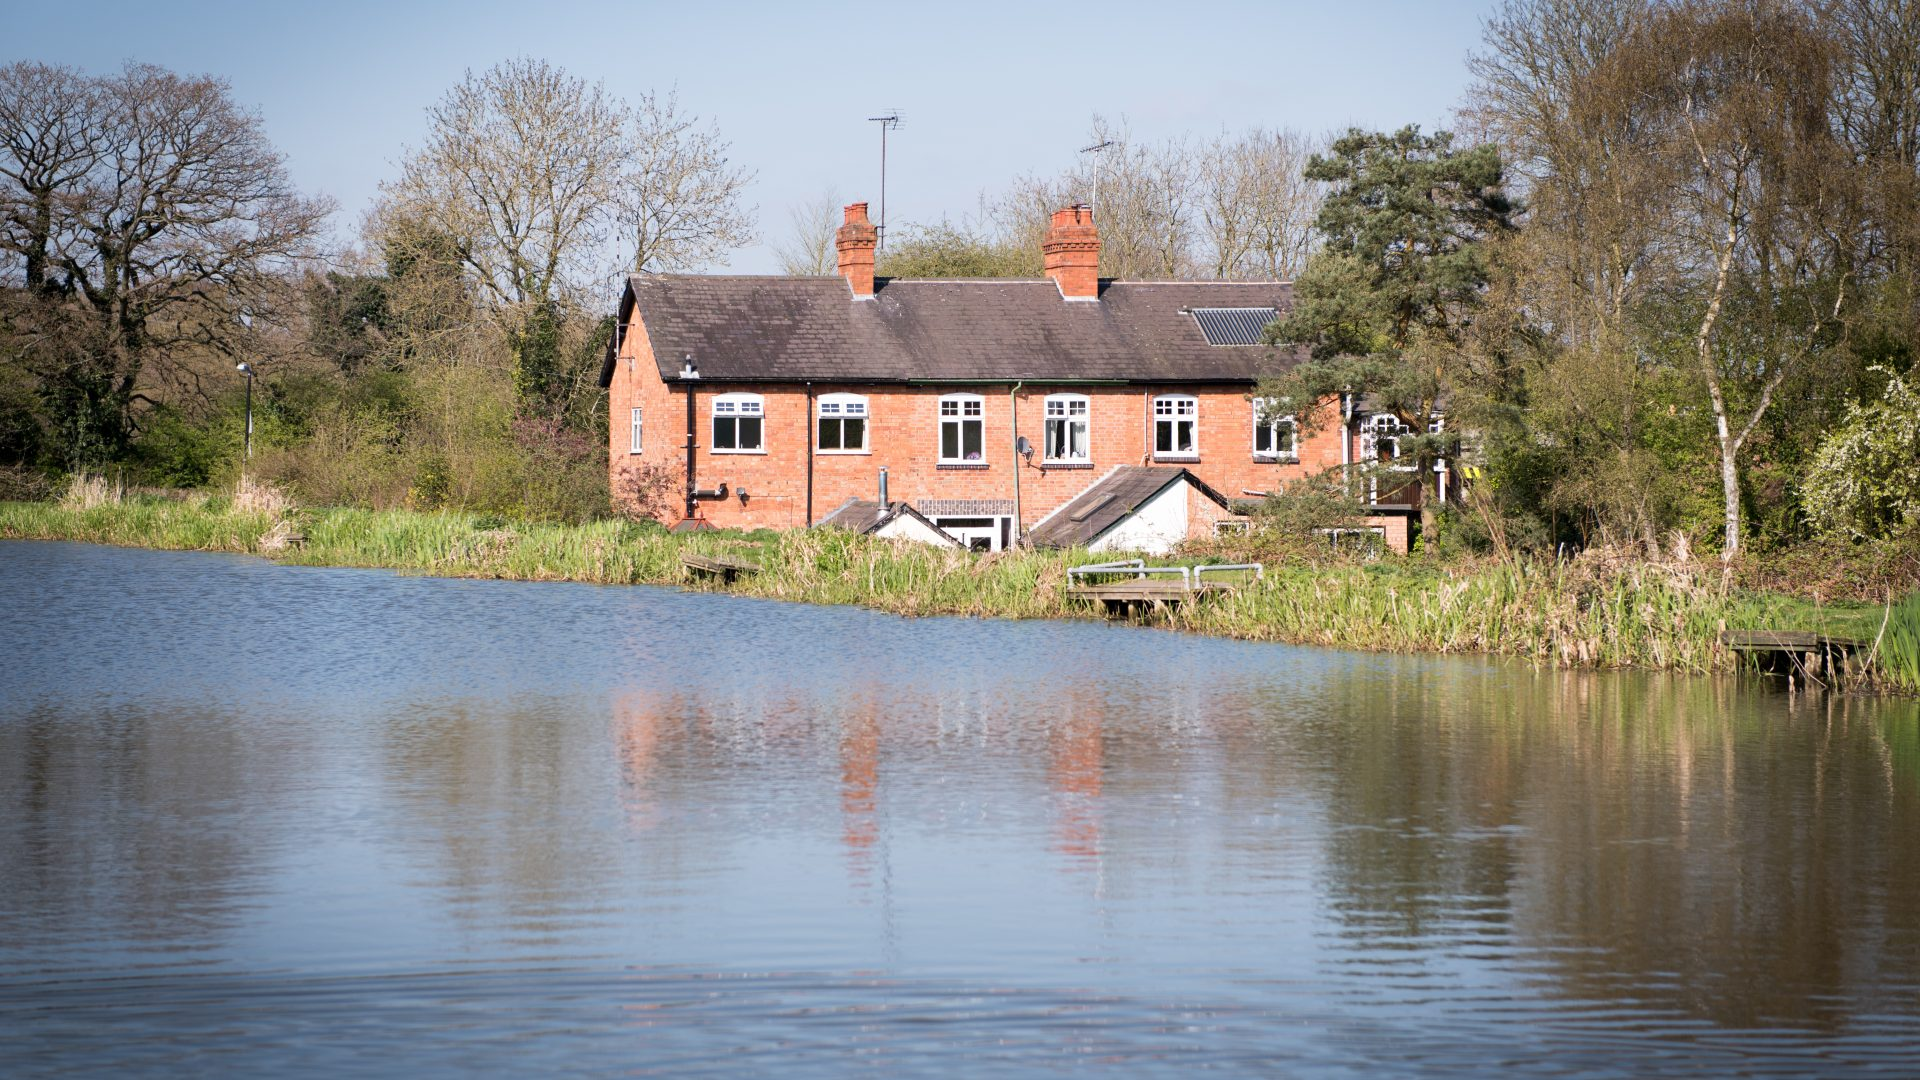 Min-Y-Don Cottage, Lapworth for sale with Mr and Mrs Clarke estate agent